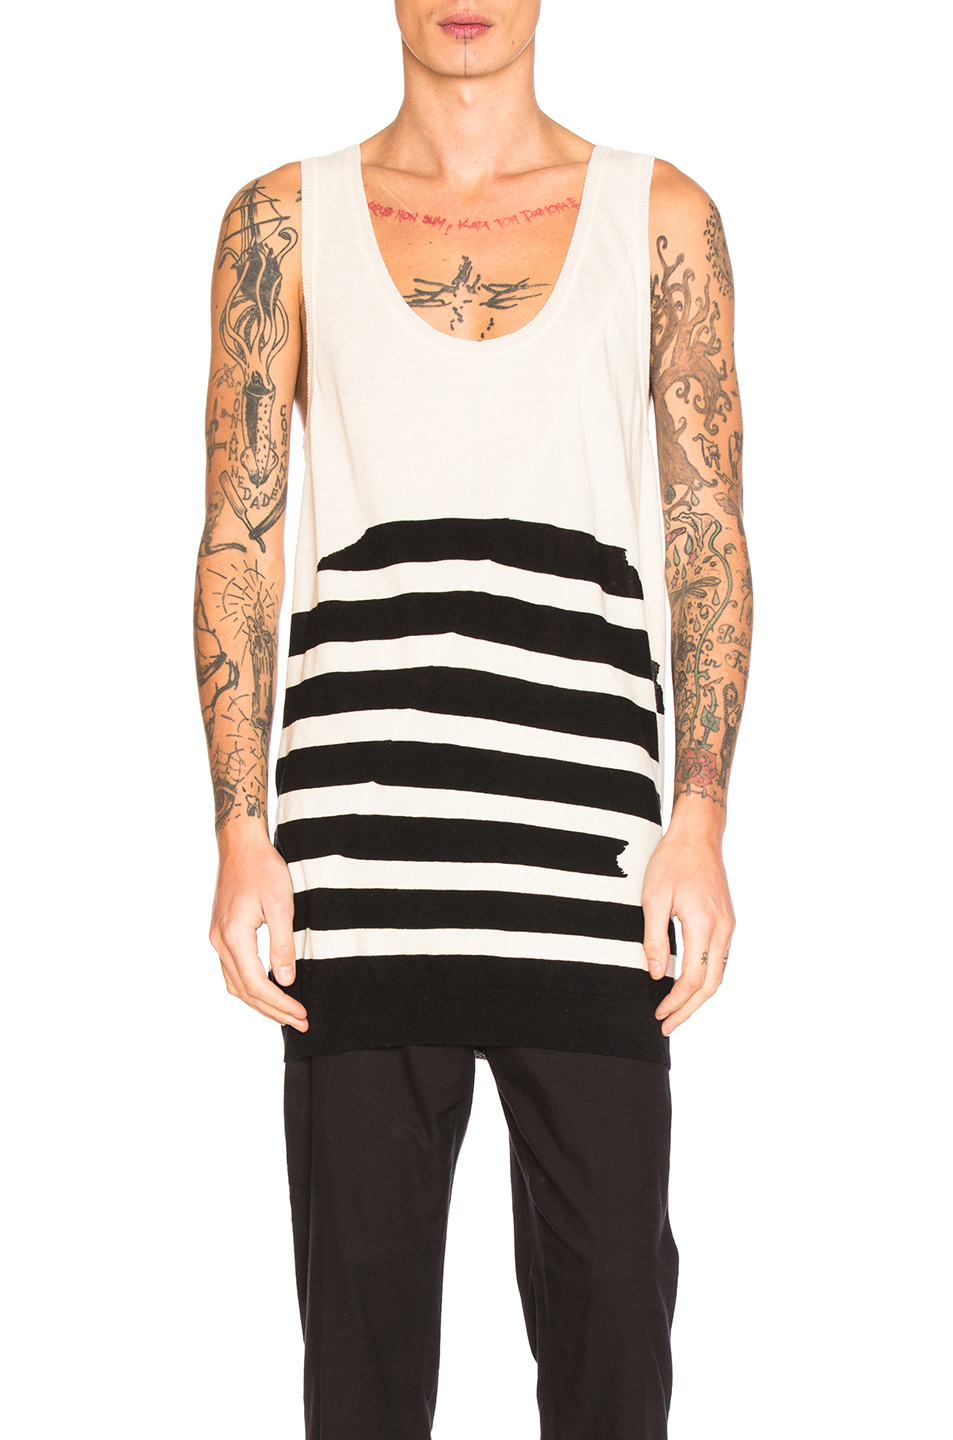 Haider Ackermann Knit Tank in White,Stripes